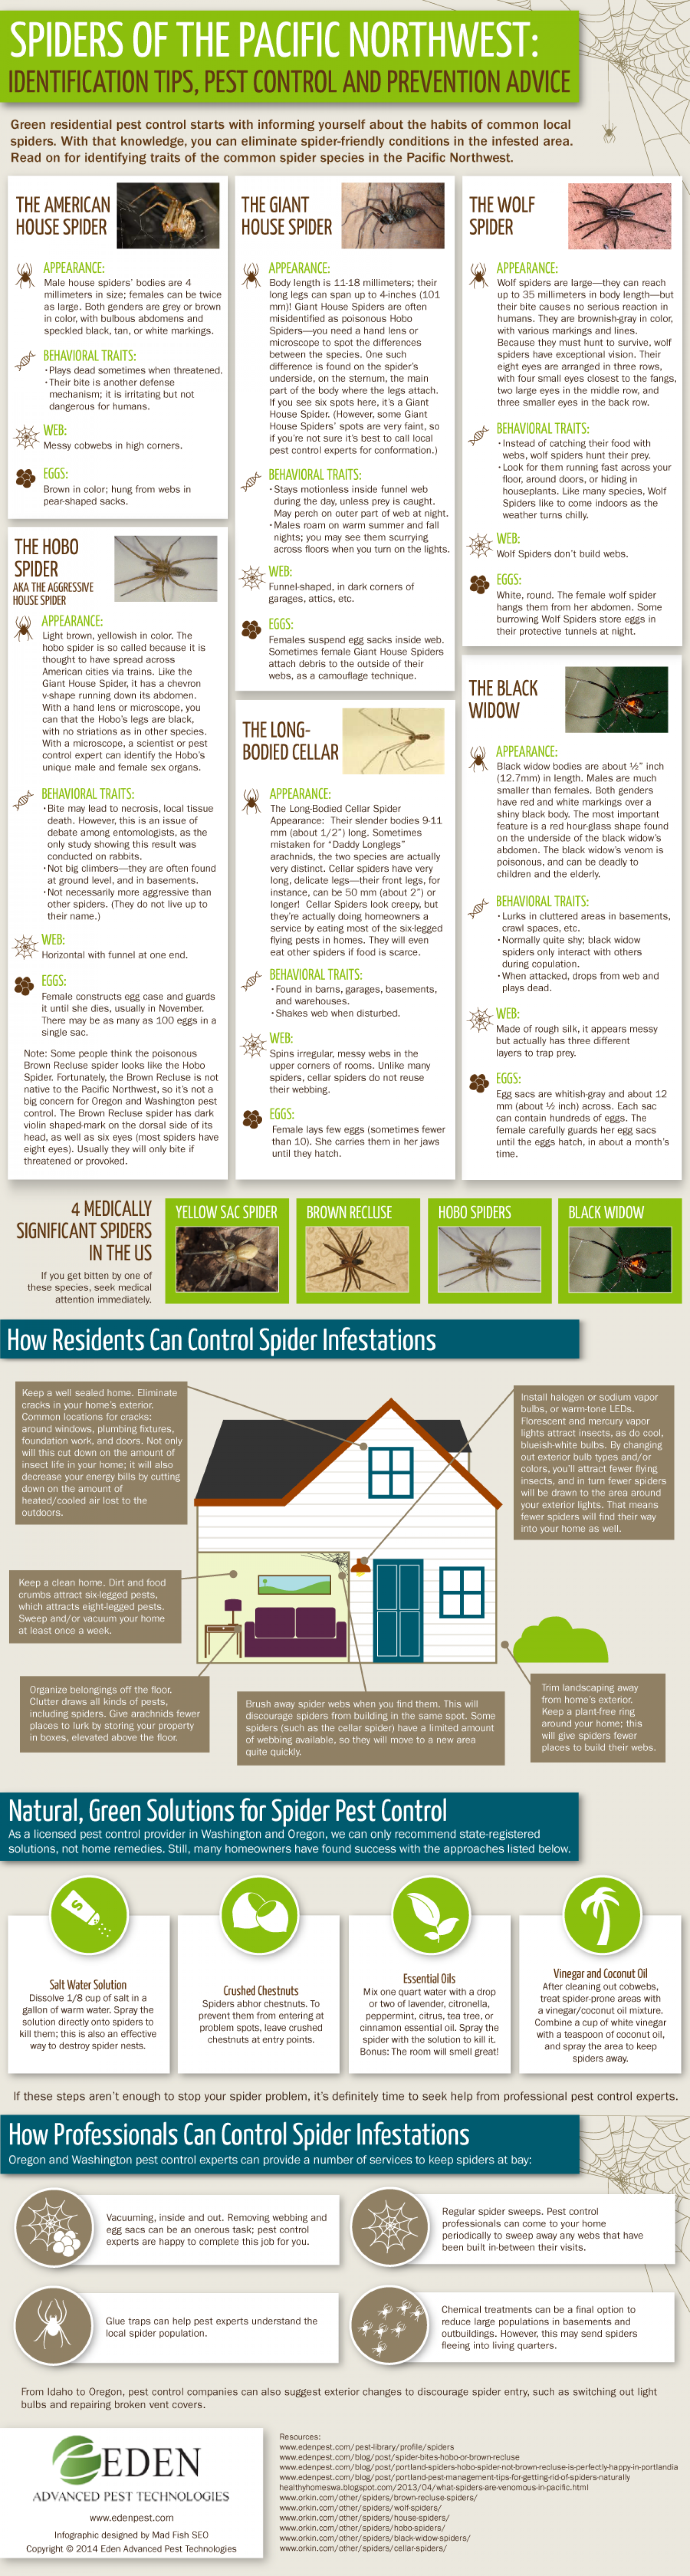 Spiders of the Pacific Northwest: Identification Tips, Pest Control and Prevention Advice Infographic